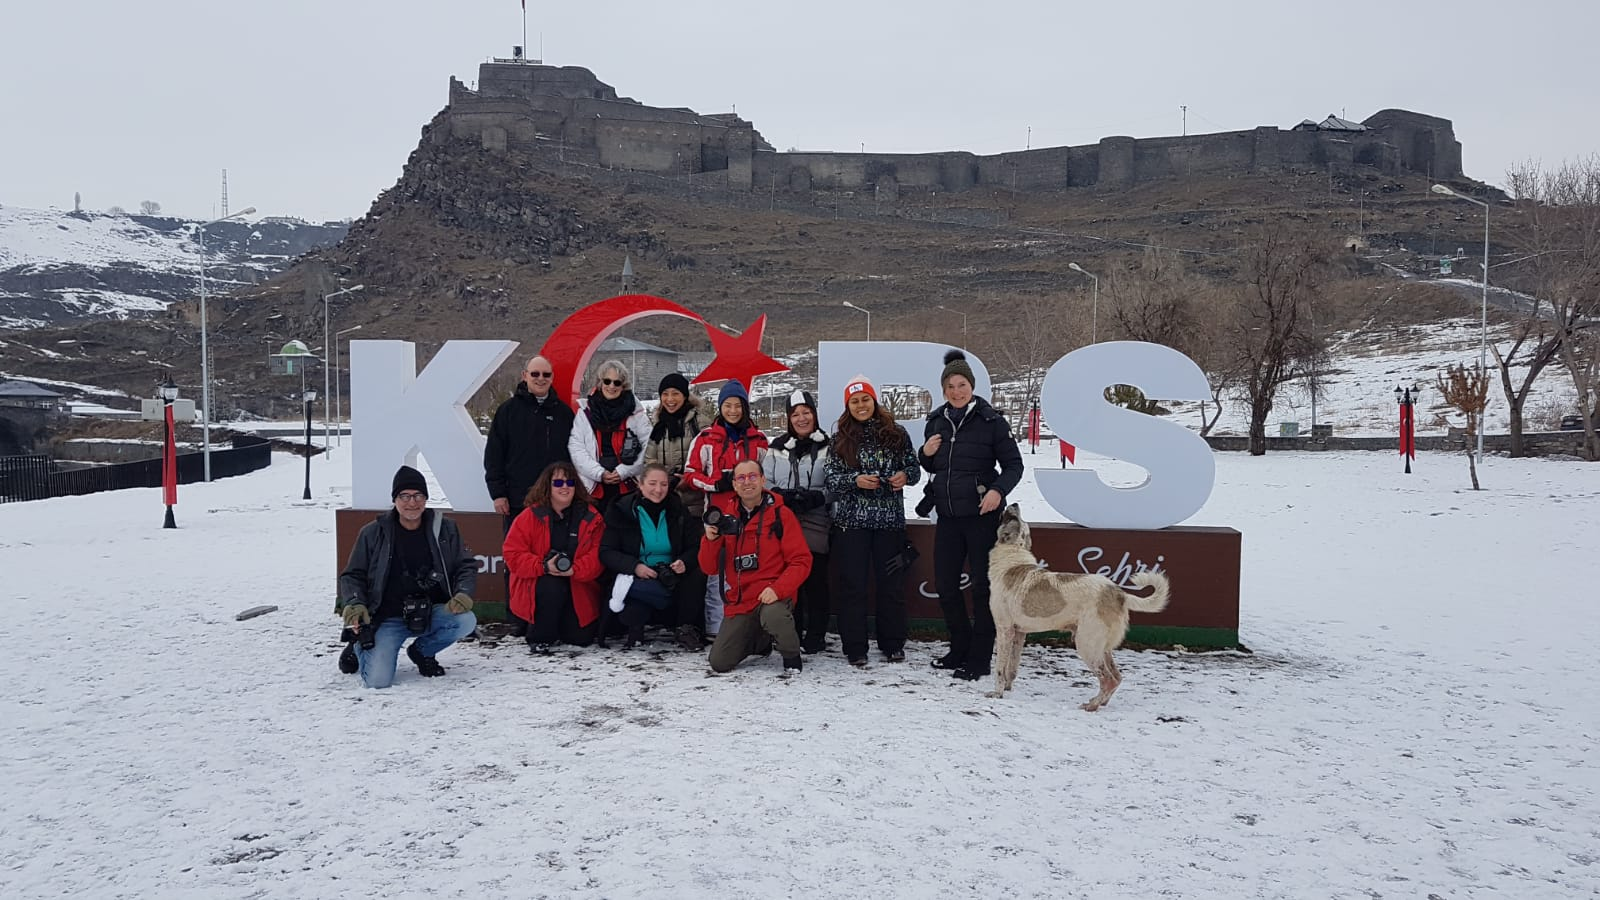 The group in front of Kars castle